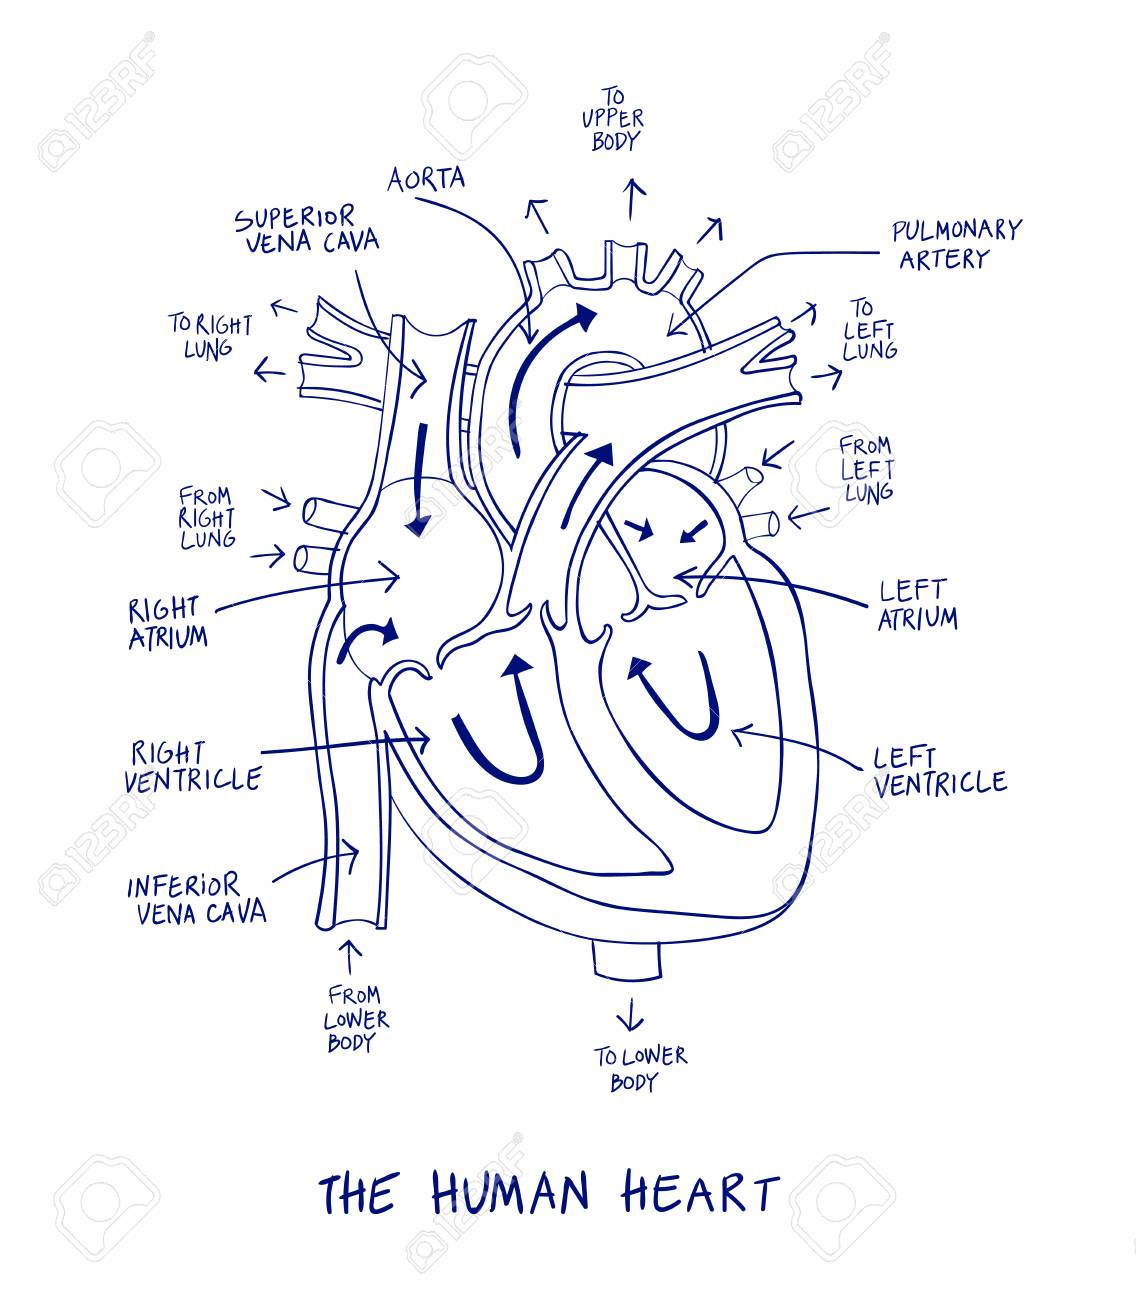 How To Make Human Heart Diagram Easily - Somurich com